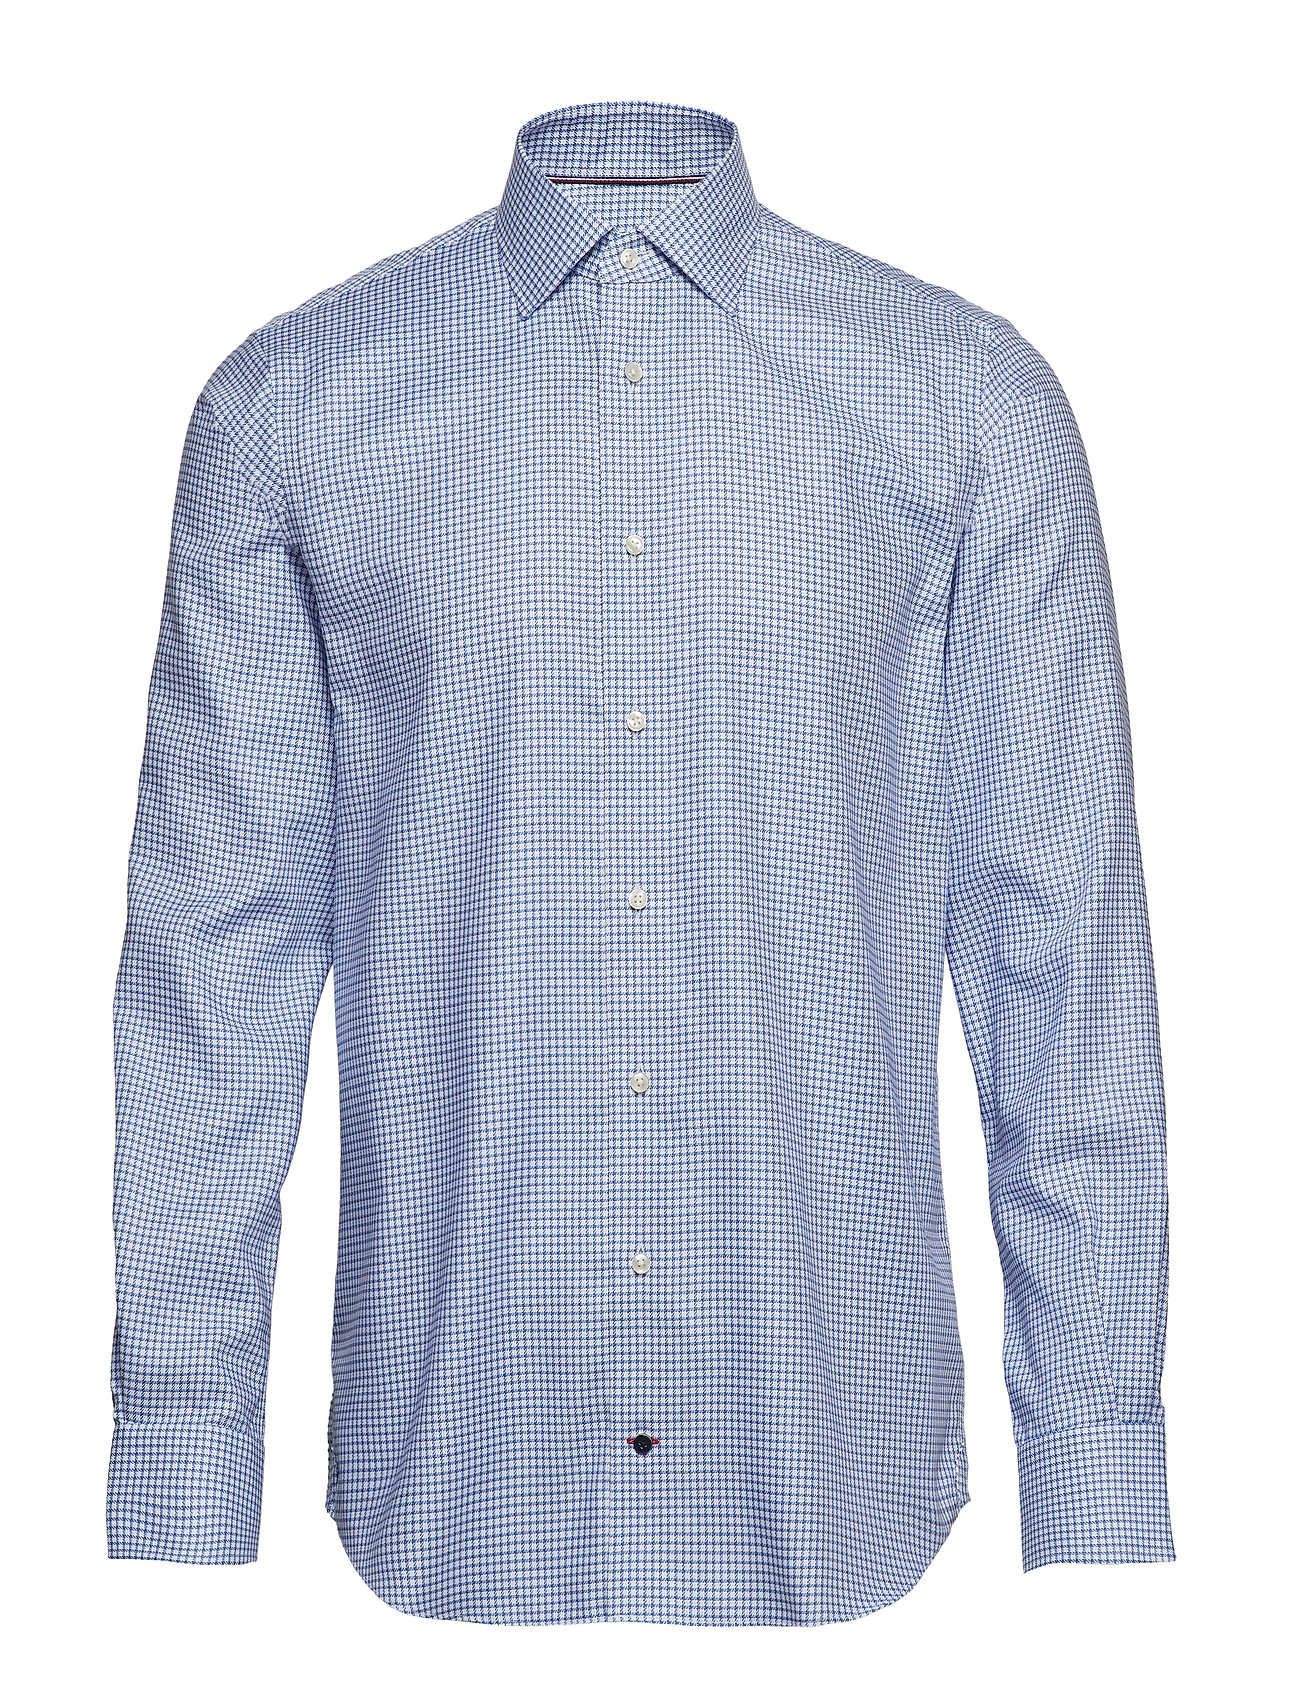 Tommy Hilfiger Tailored CHECK CLASSIC SHIRT - BLUEBELL/BRIGHTWHITE/MEDIEVALB